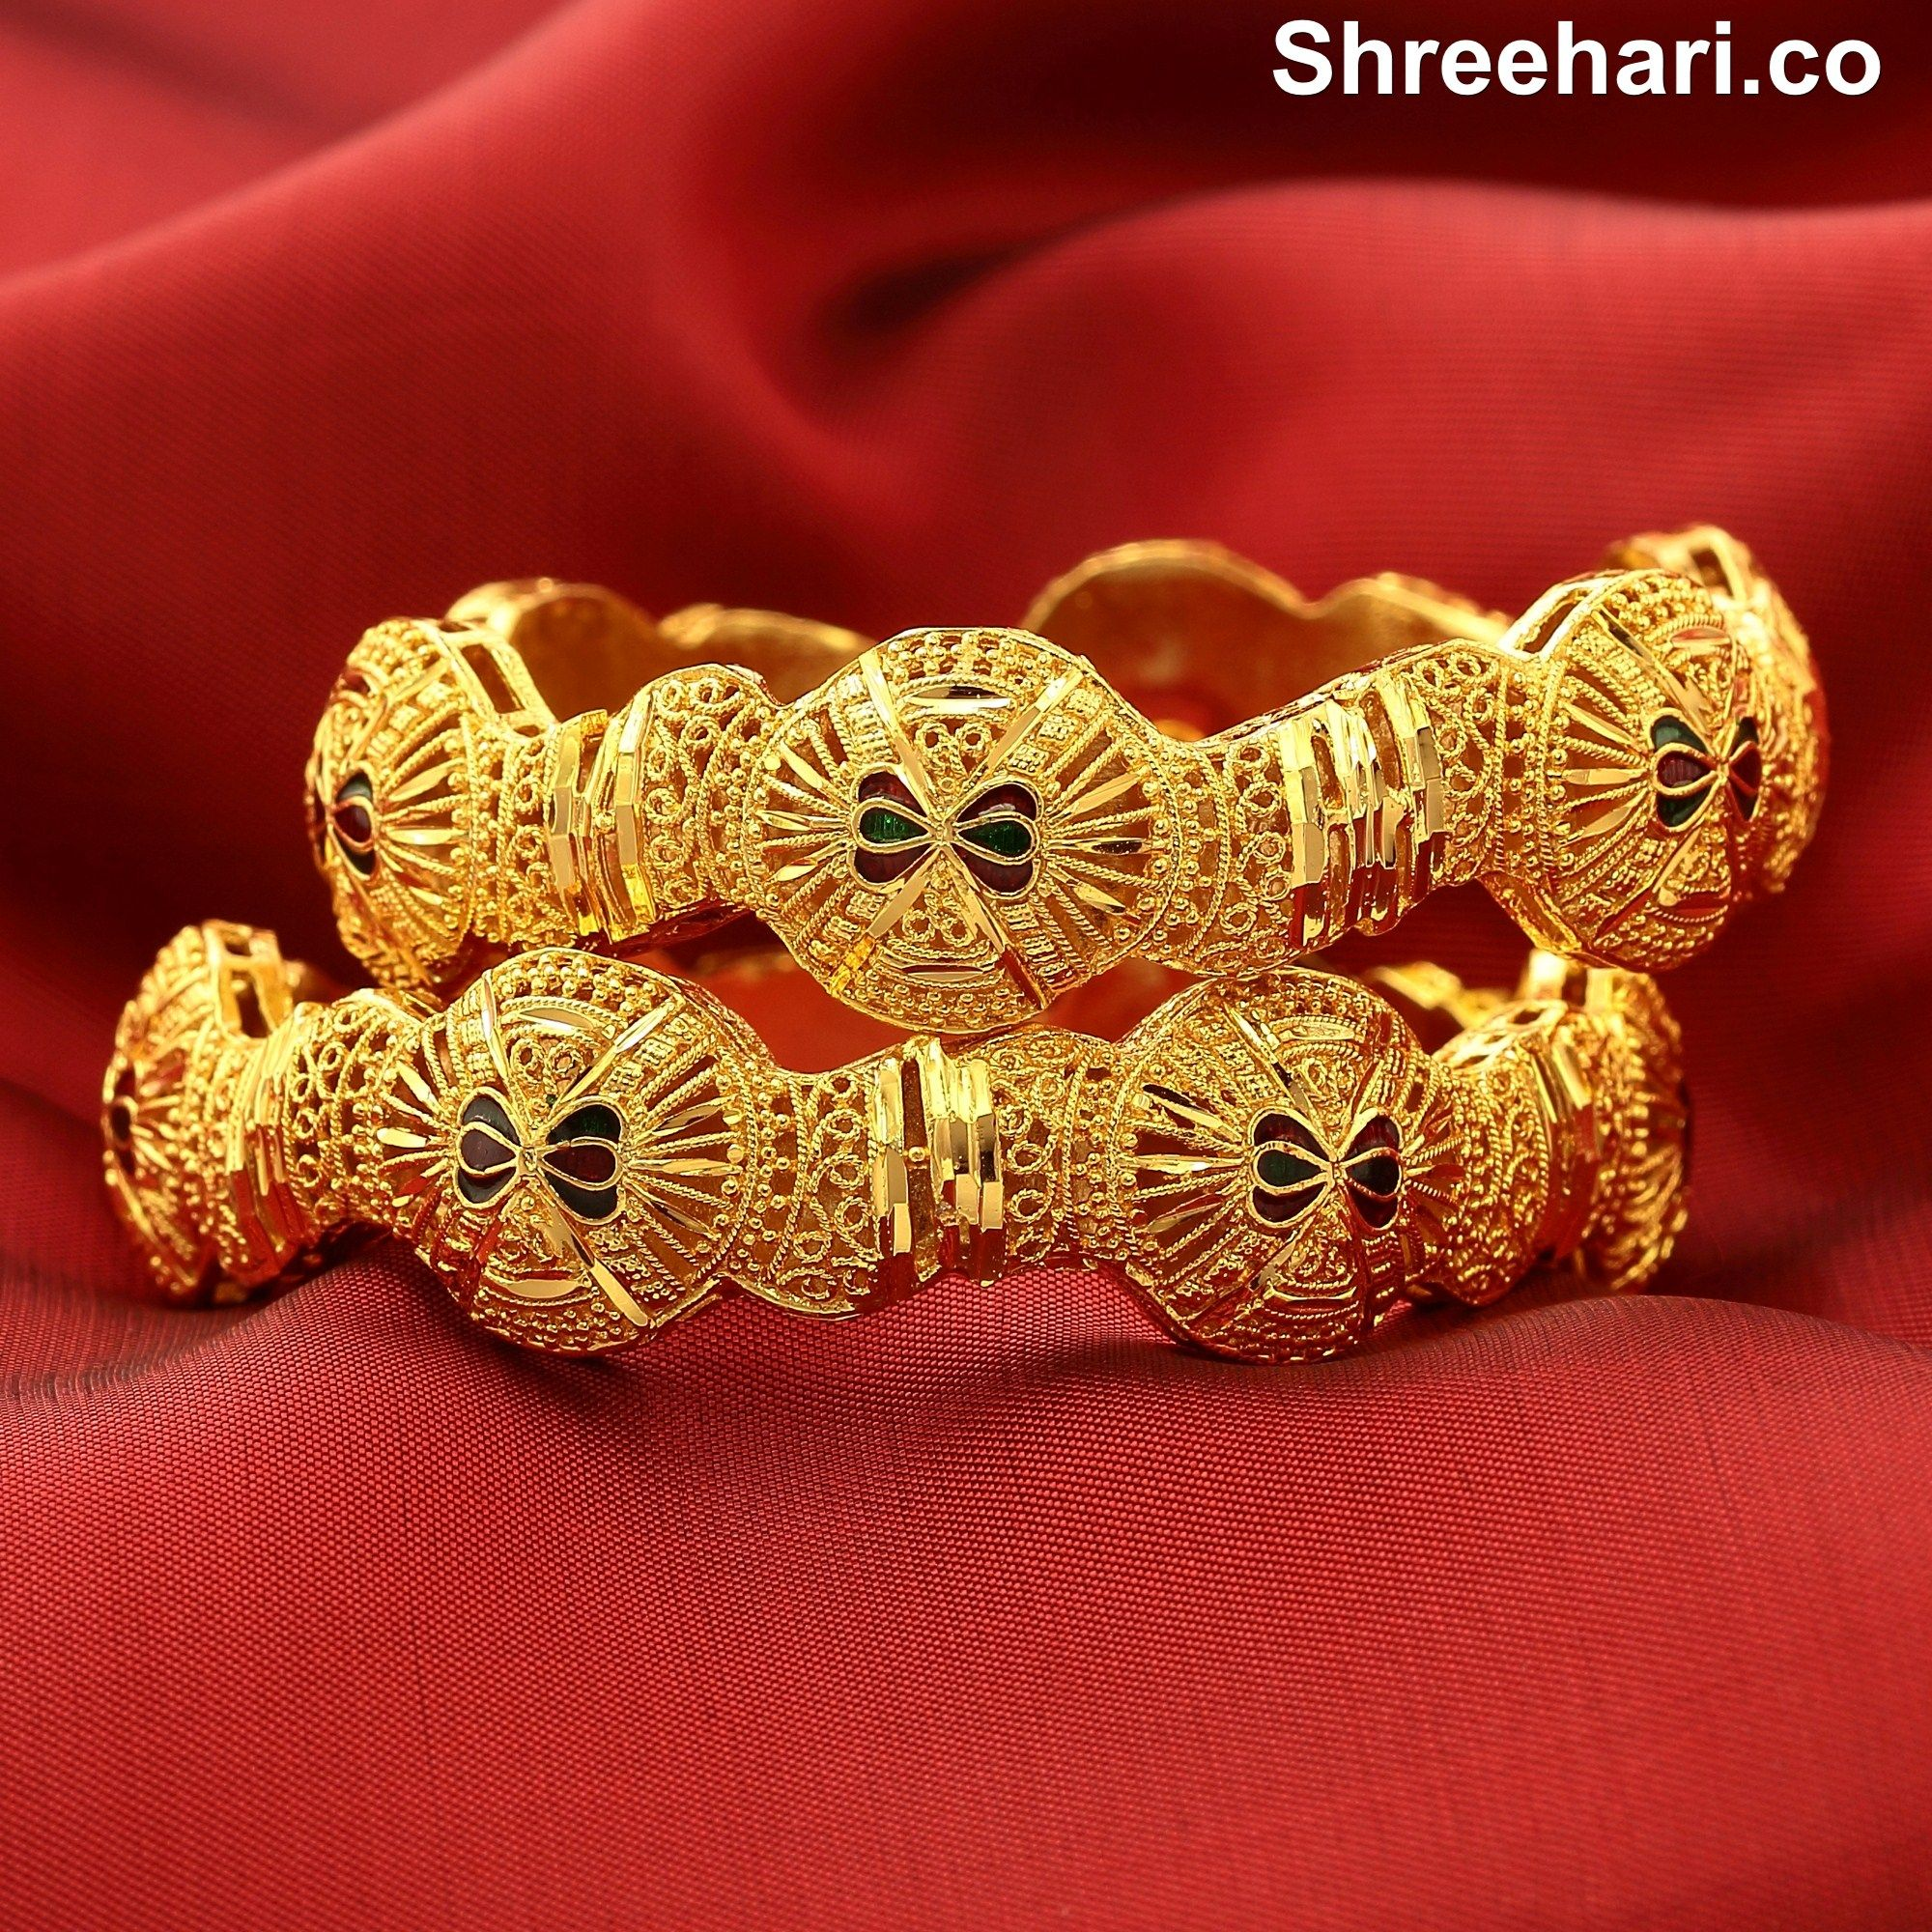 http://www.shreehari.co/ Jewellery for INR 890.00 http://bit.ly/1EQOOI7